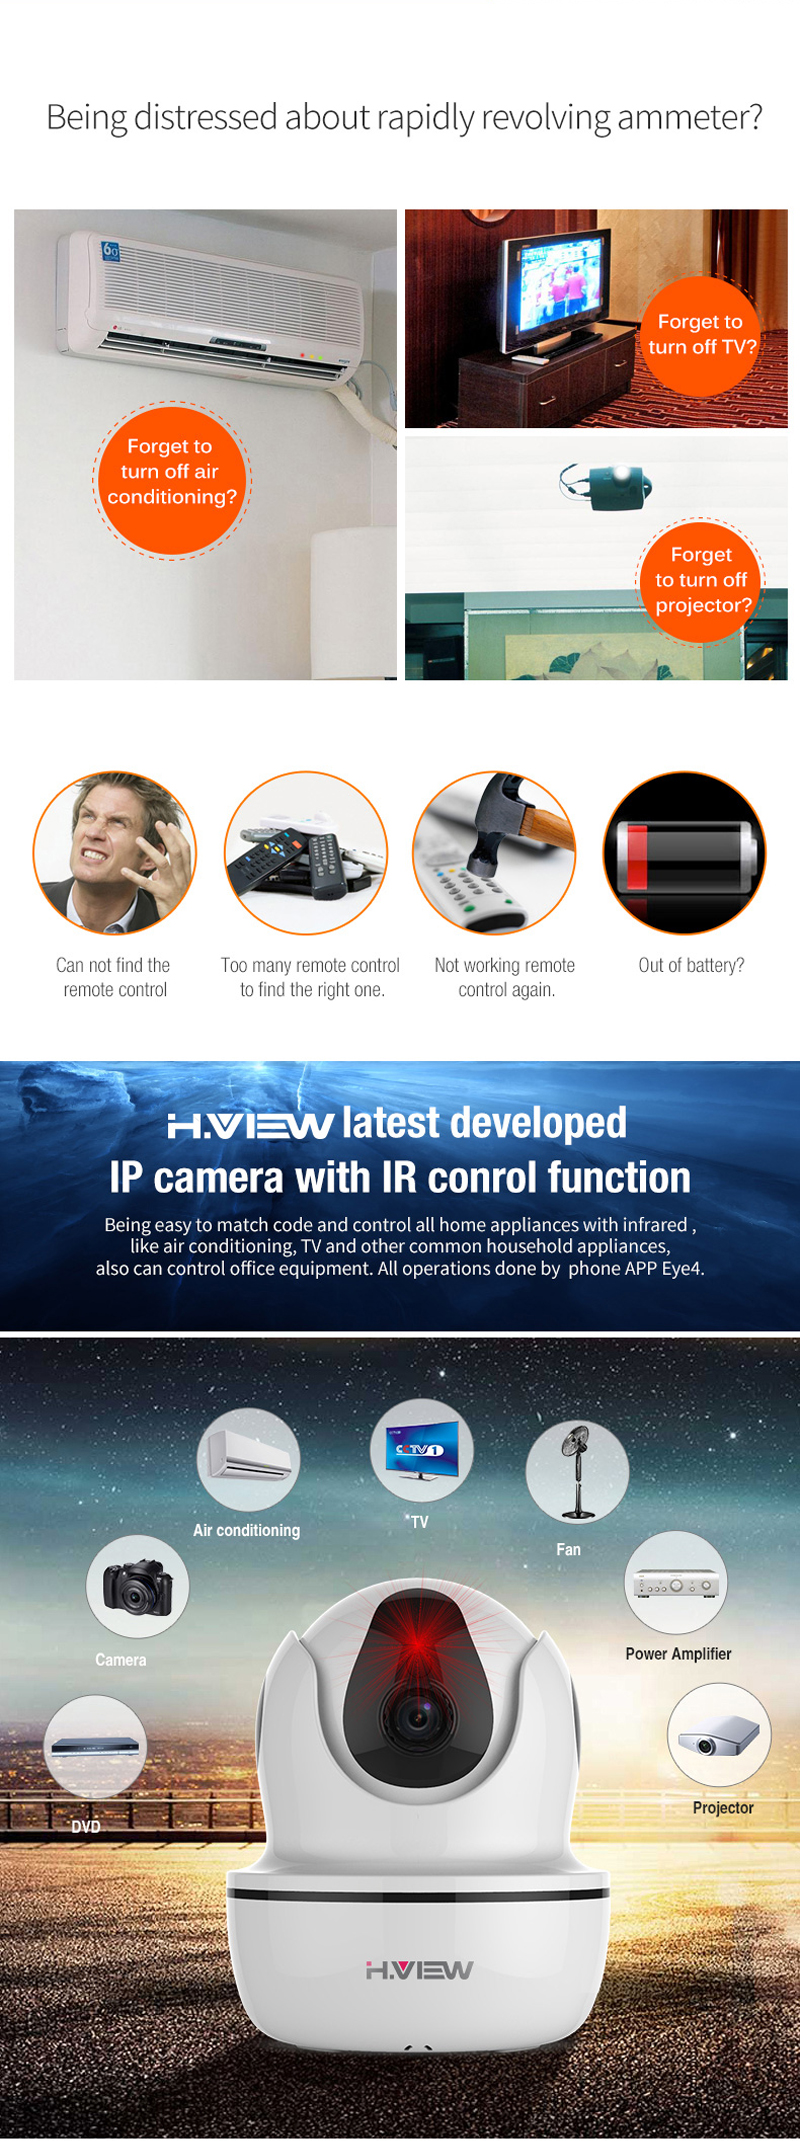 IP Camera 1080P Wifi Wireless Suveillance Camera IR Control Function  Infrared Control TV Air Conditioner On Smartphone